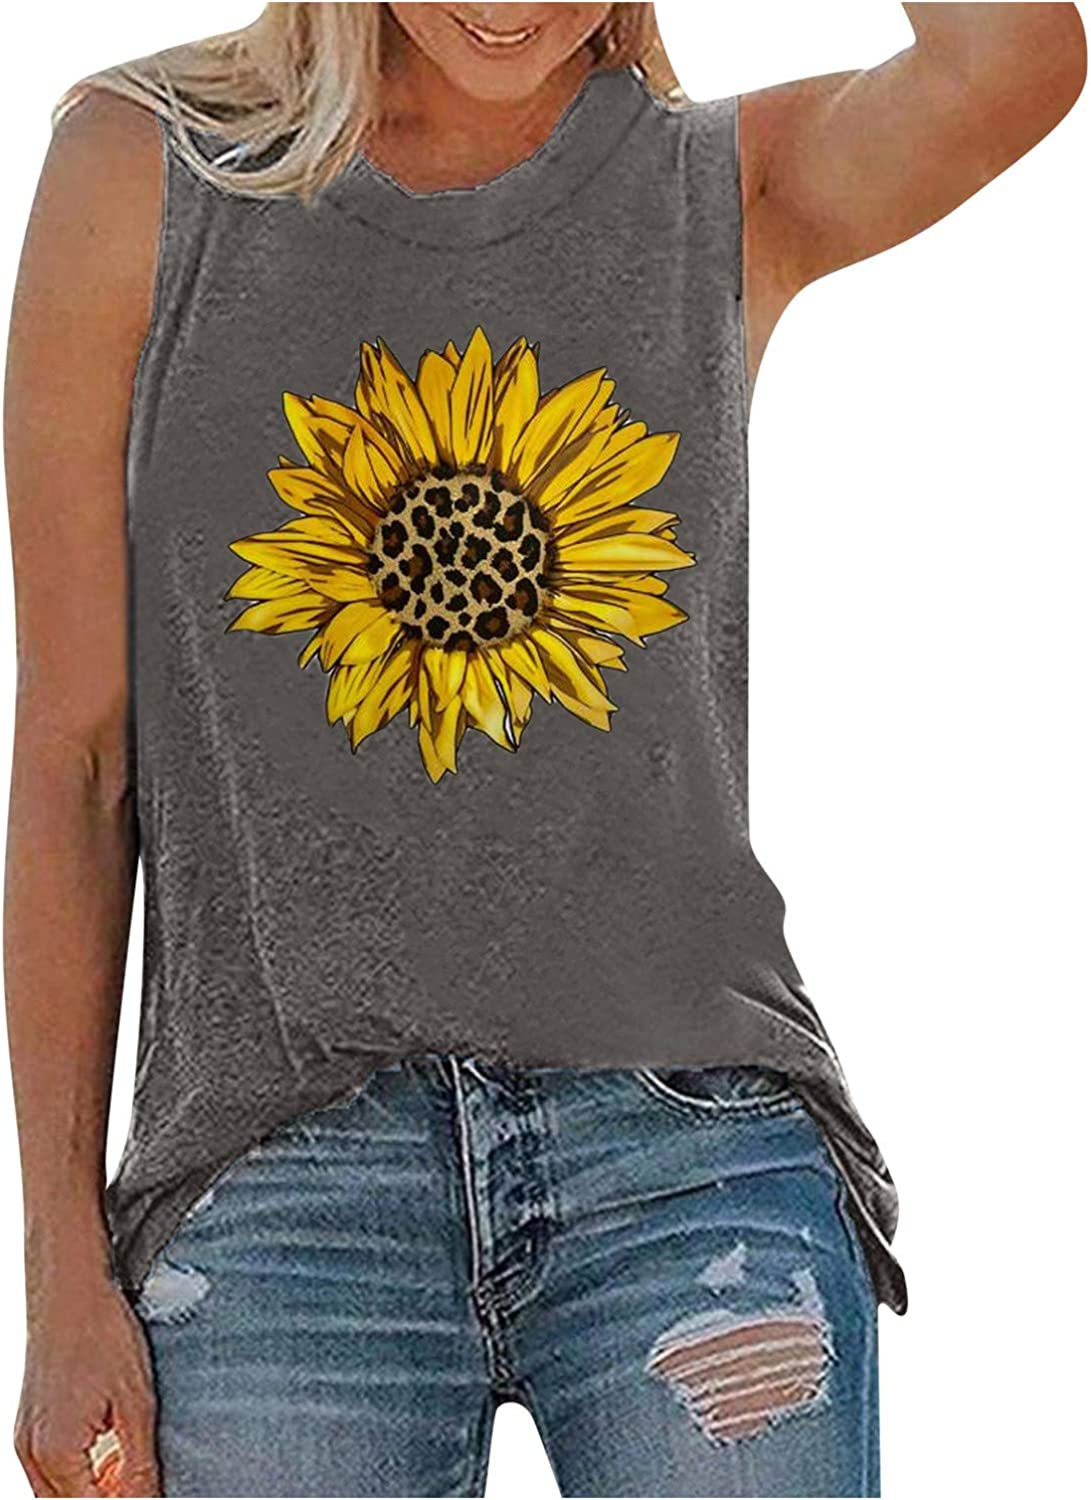 Tank Tops for Women, Fouth of July Sleeveless American Flag Sunflower Printed O-Neck Tops Tunic Blouse Tops Tees